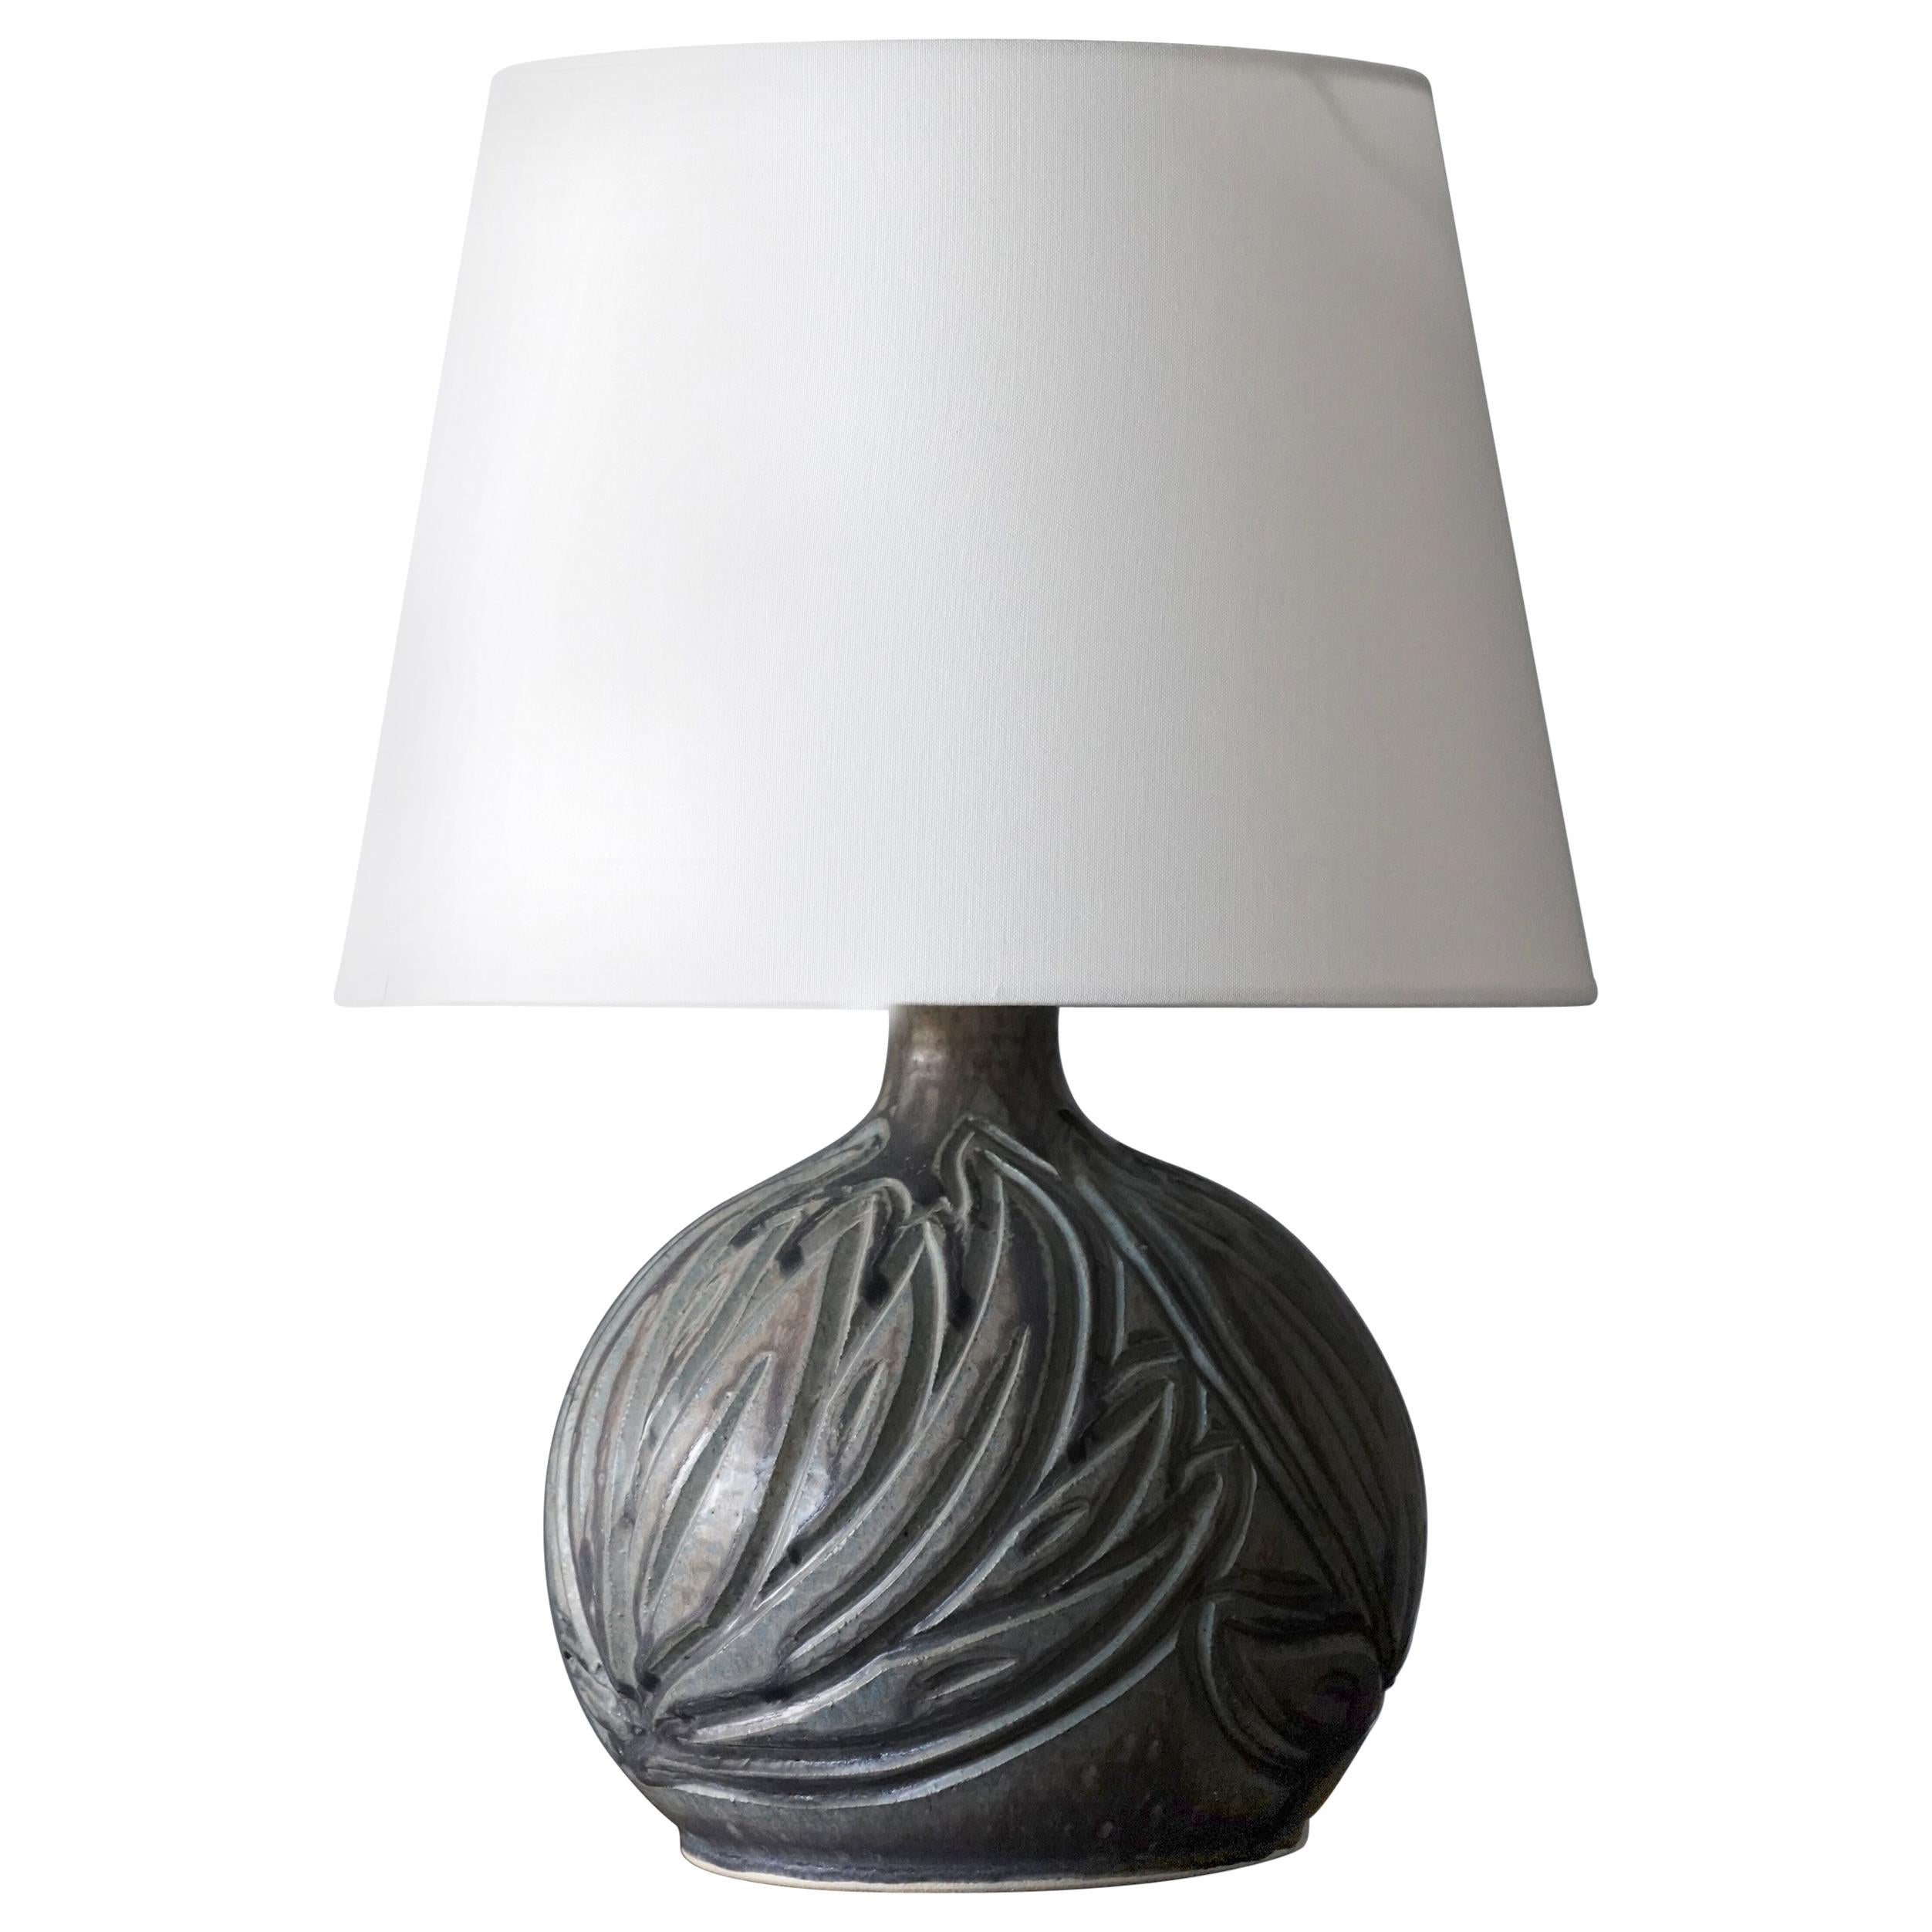 Løvemose, Organic Table Lamp, Glazed and Painted Stoneware, Denmark, 1960s